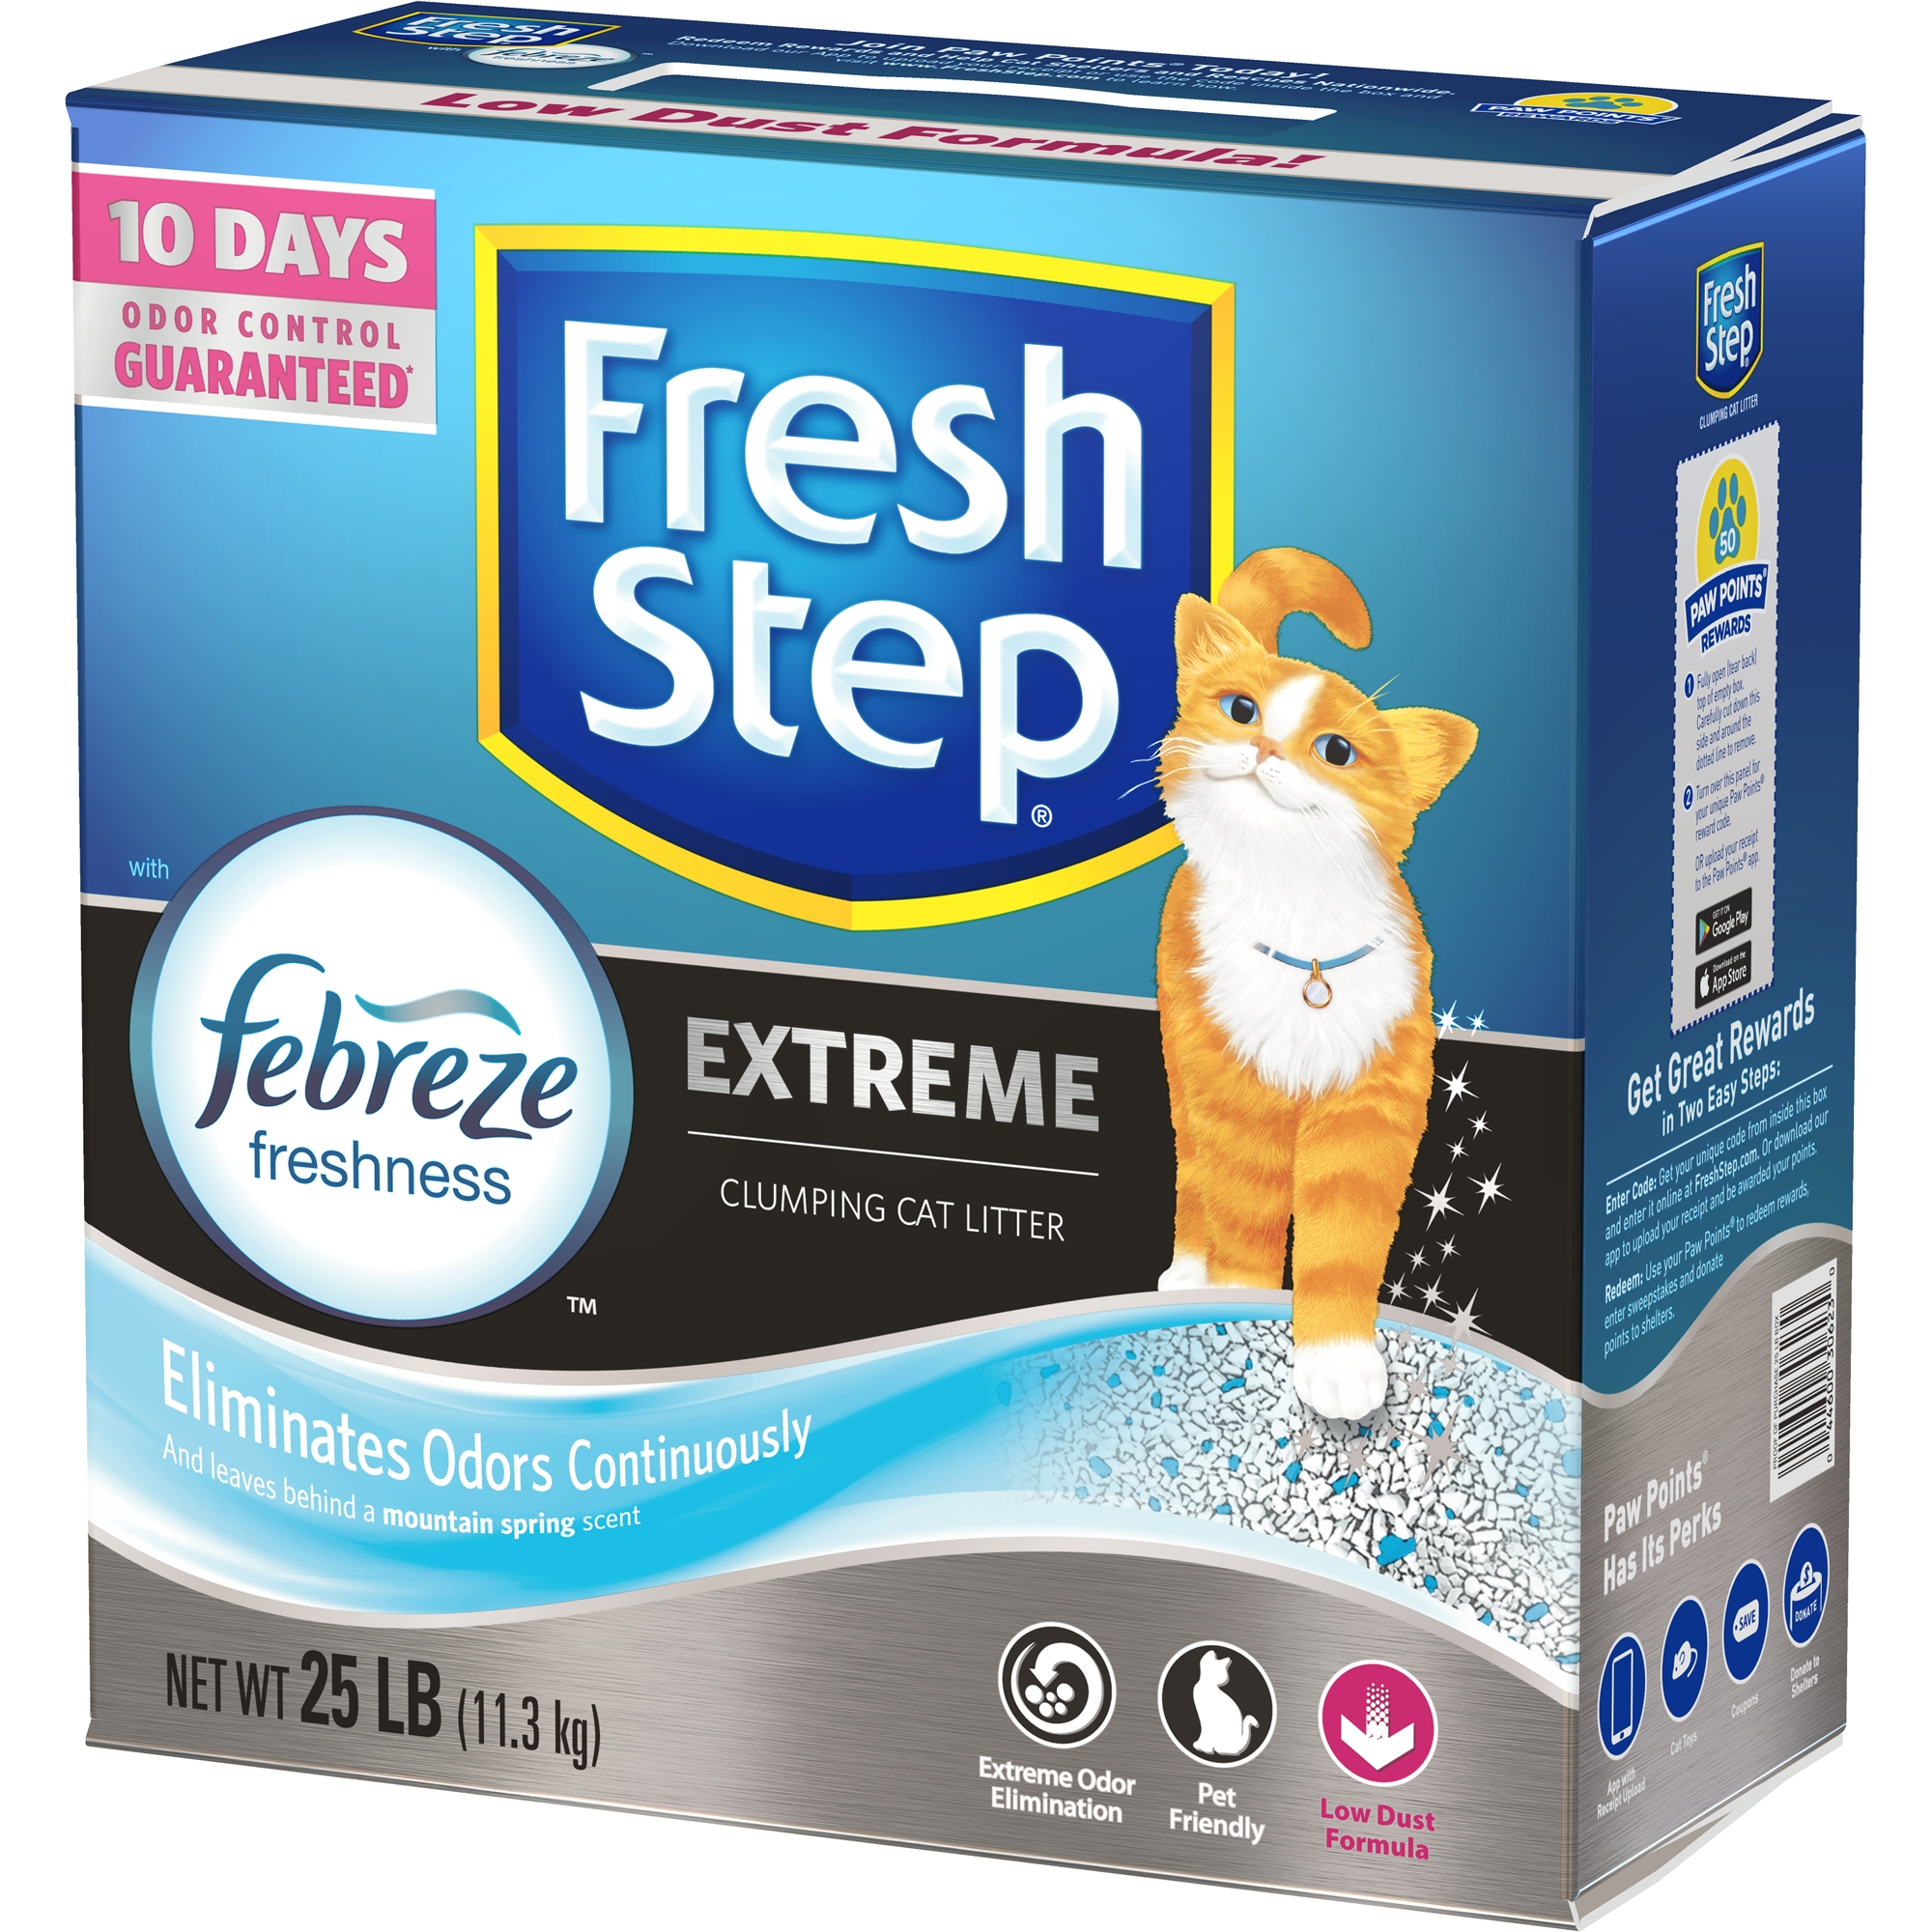 Fresh Step Extreme with Febreze Freshness, Clumping Cat Litter, Scented, 25-lb